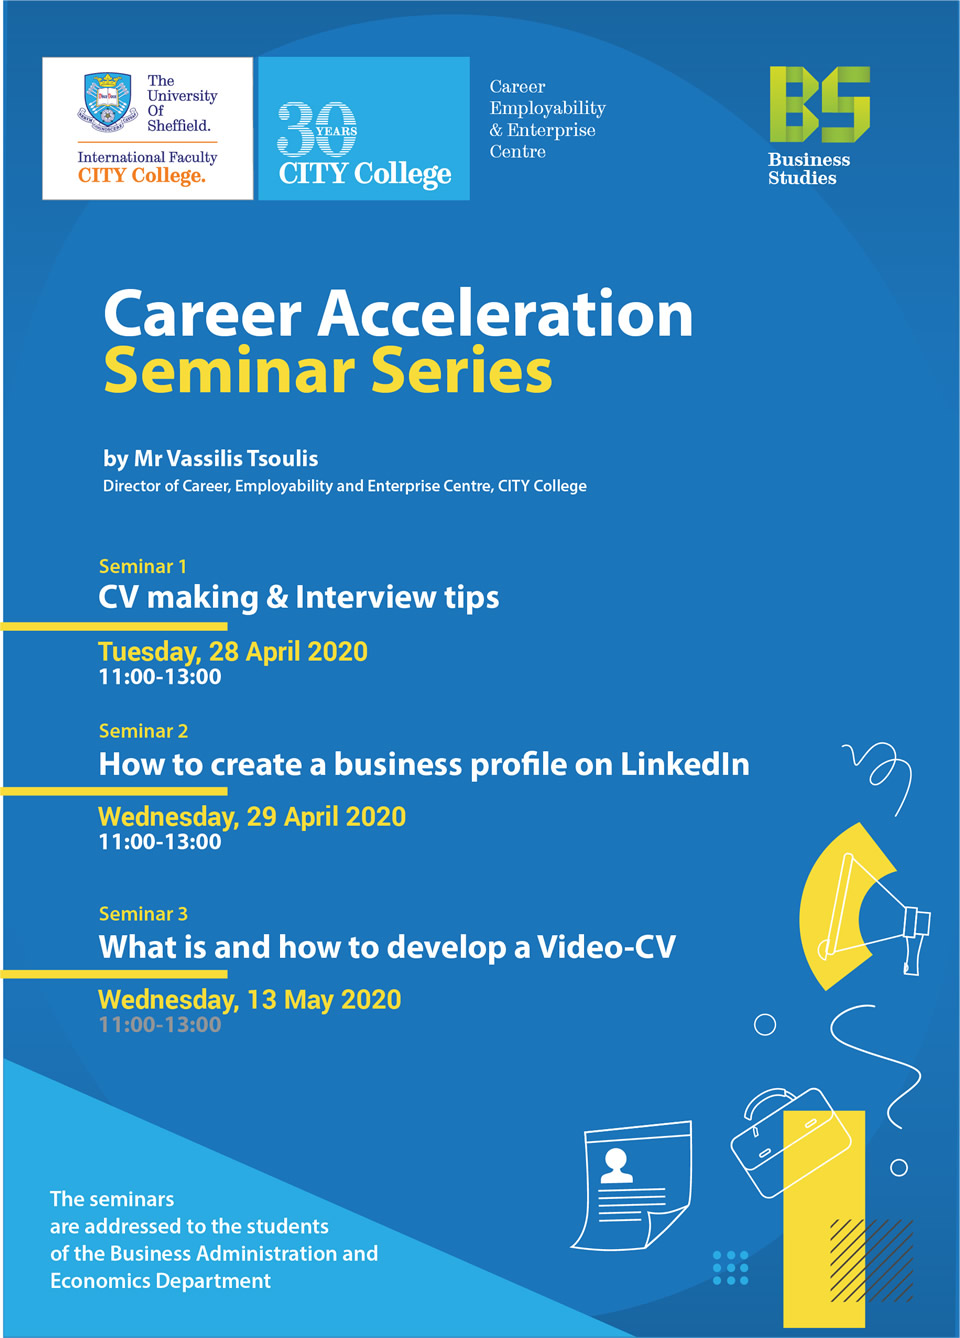 Career Acceleration Seminar Series by CITY College Business Administration and Economics Department Department